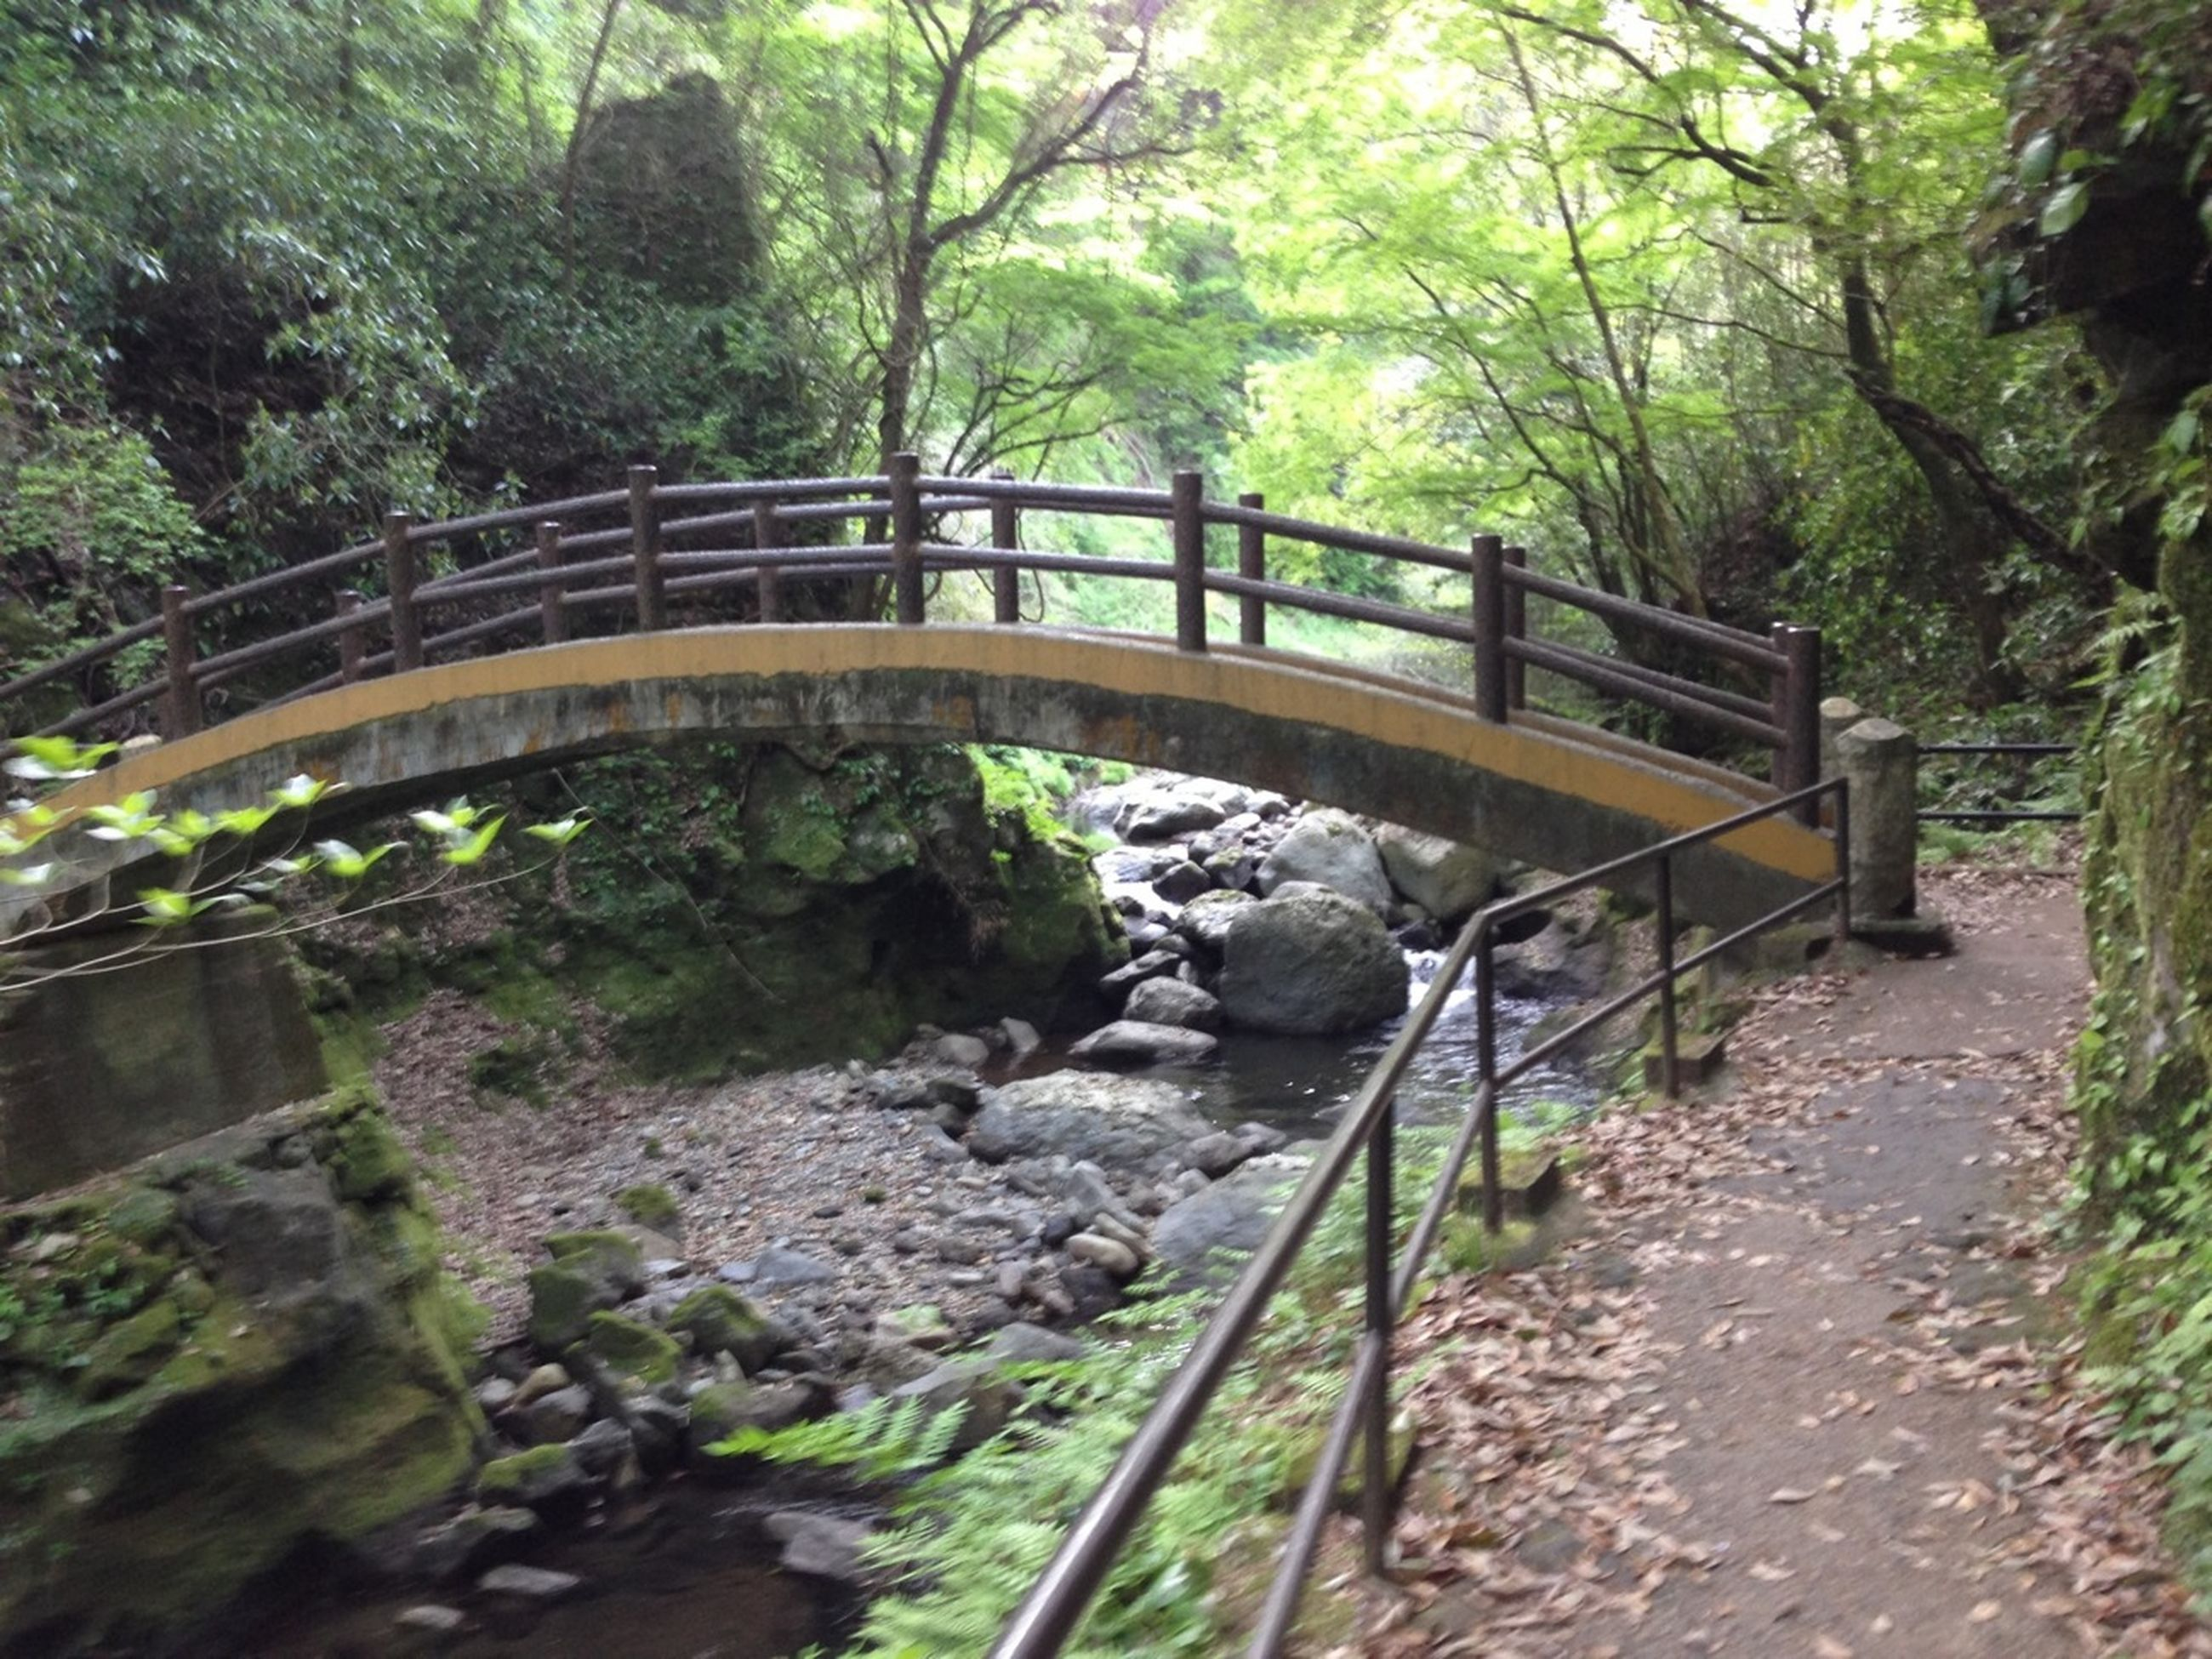 connection, bridge - man made structure, tree, water, river, bridge, footbridge, forest, built structure, railing, architecture, arch bridge, transportation, rock - object, tranquility, nature, stream, engineering, day, growth